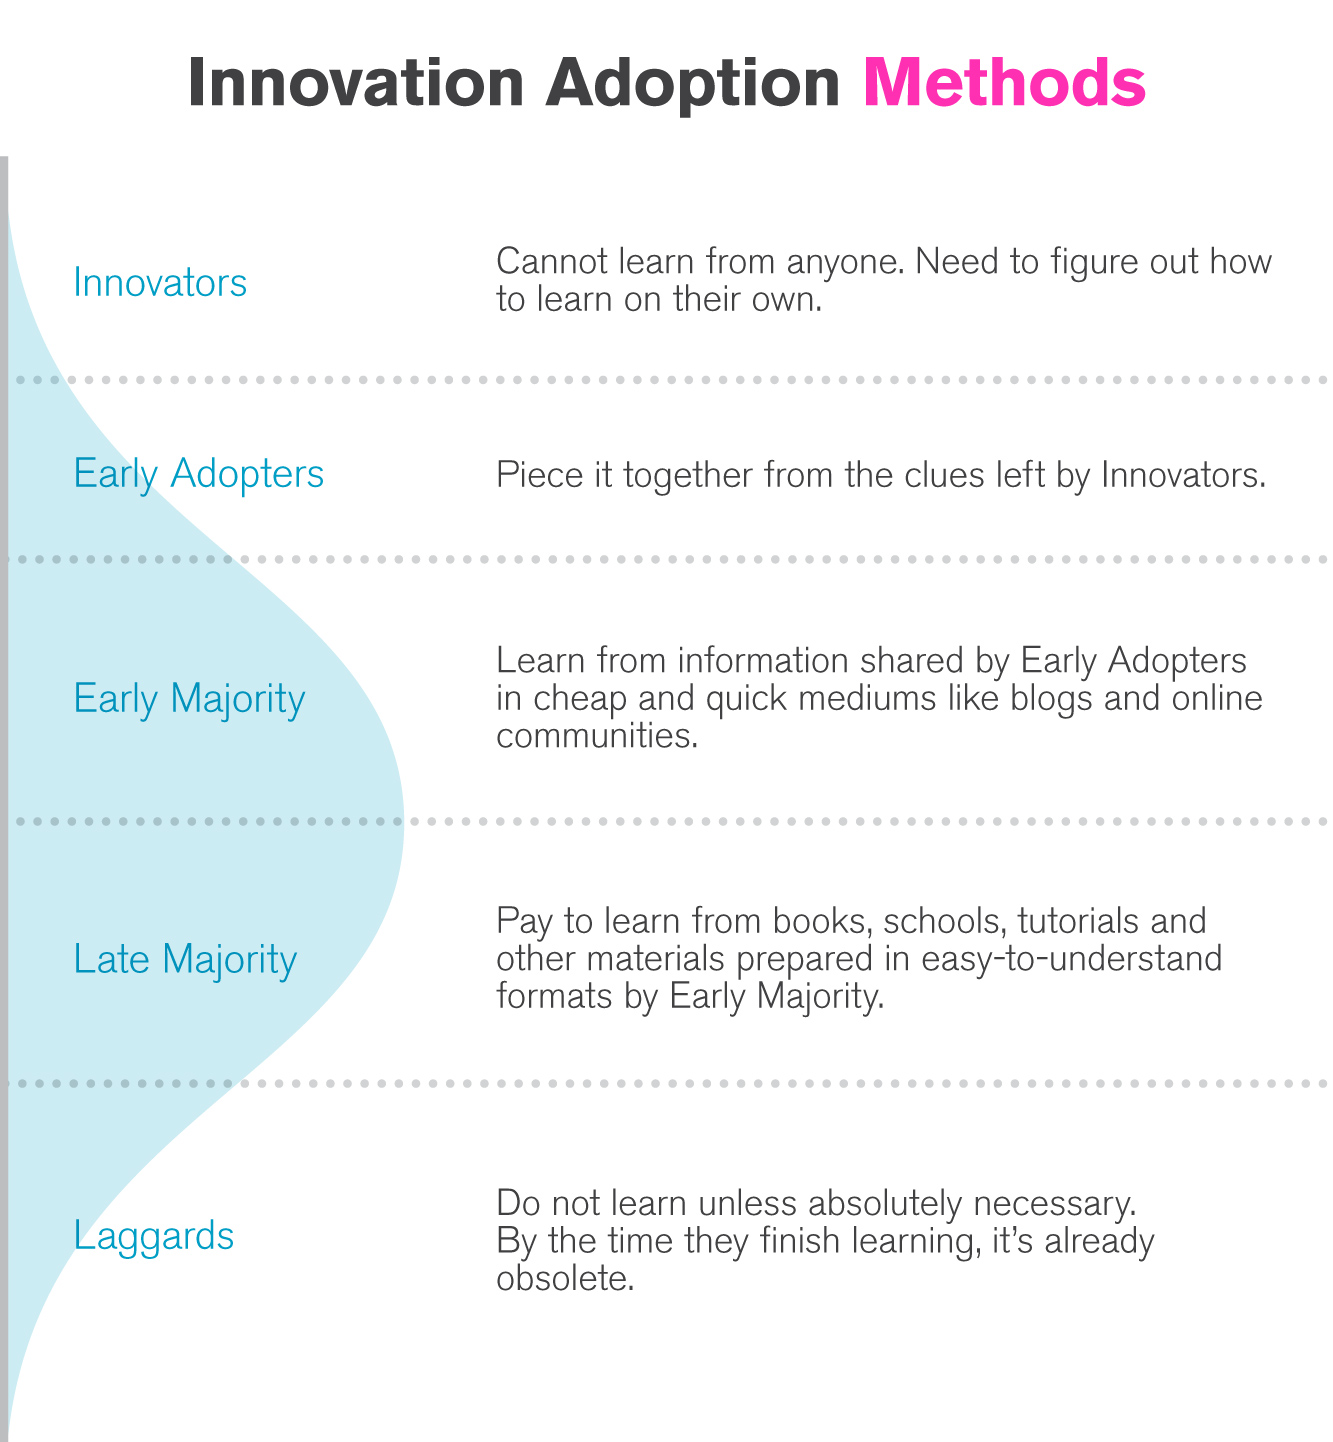 Innovation Adoption Methods